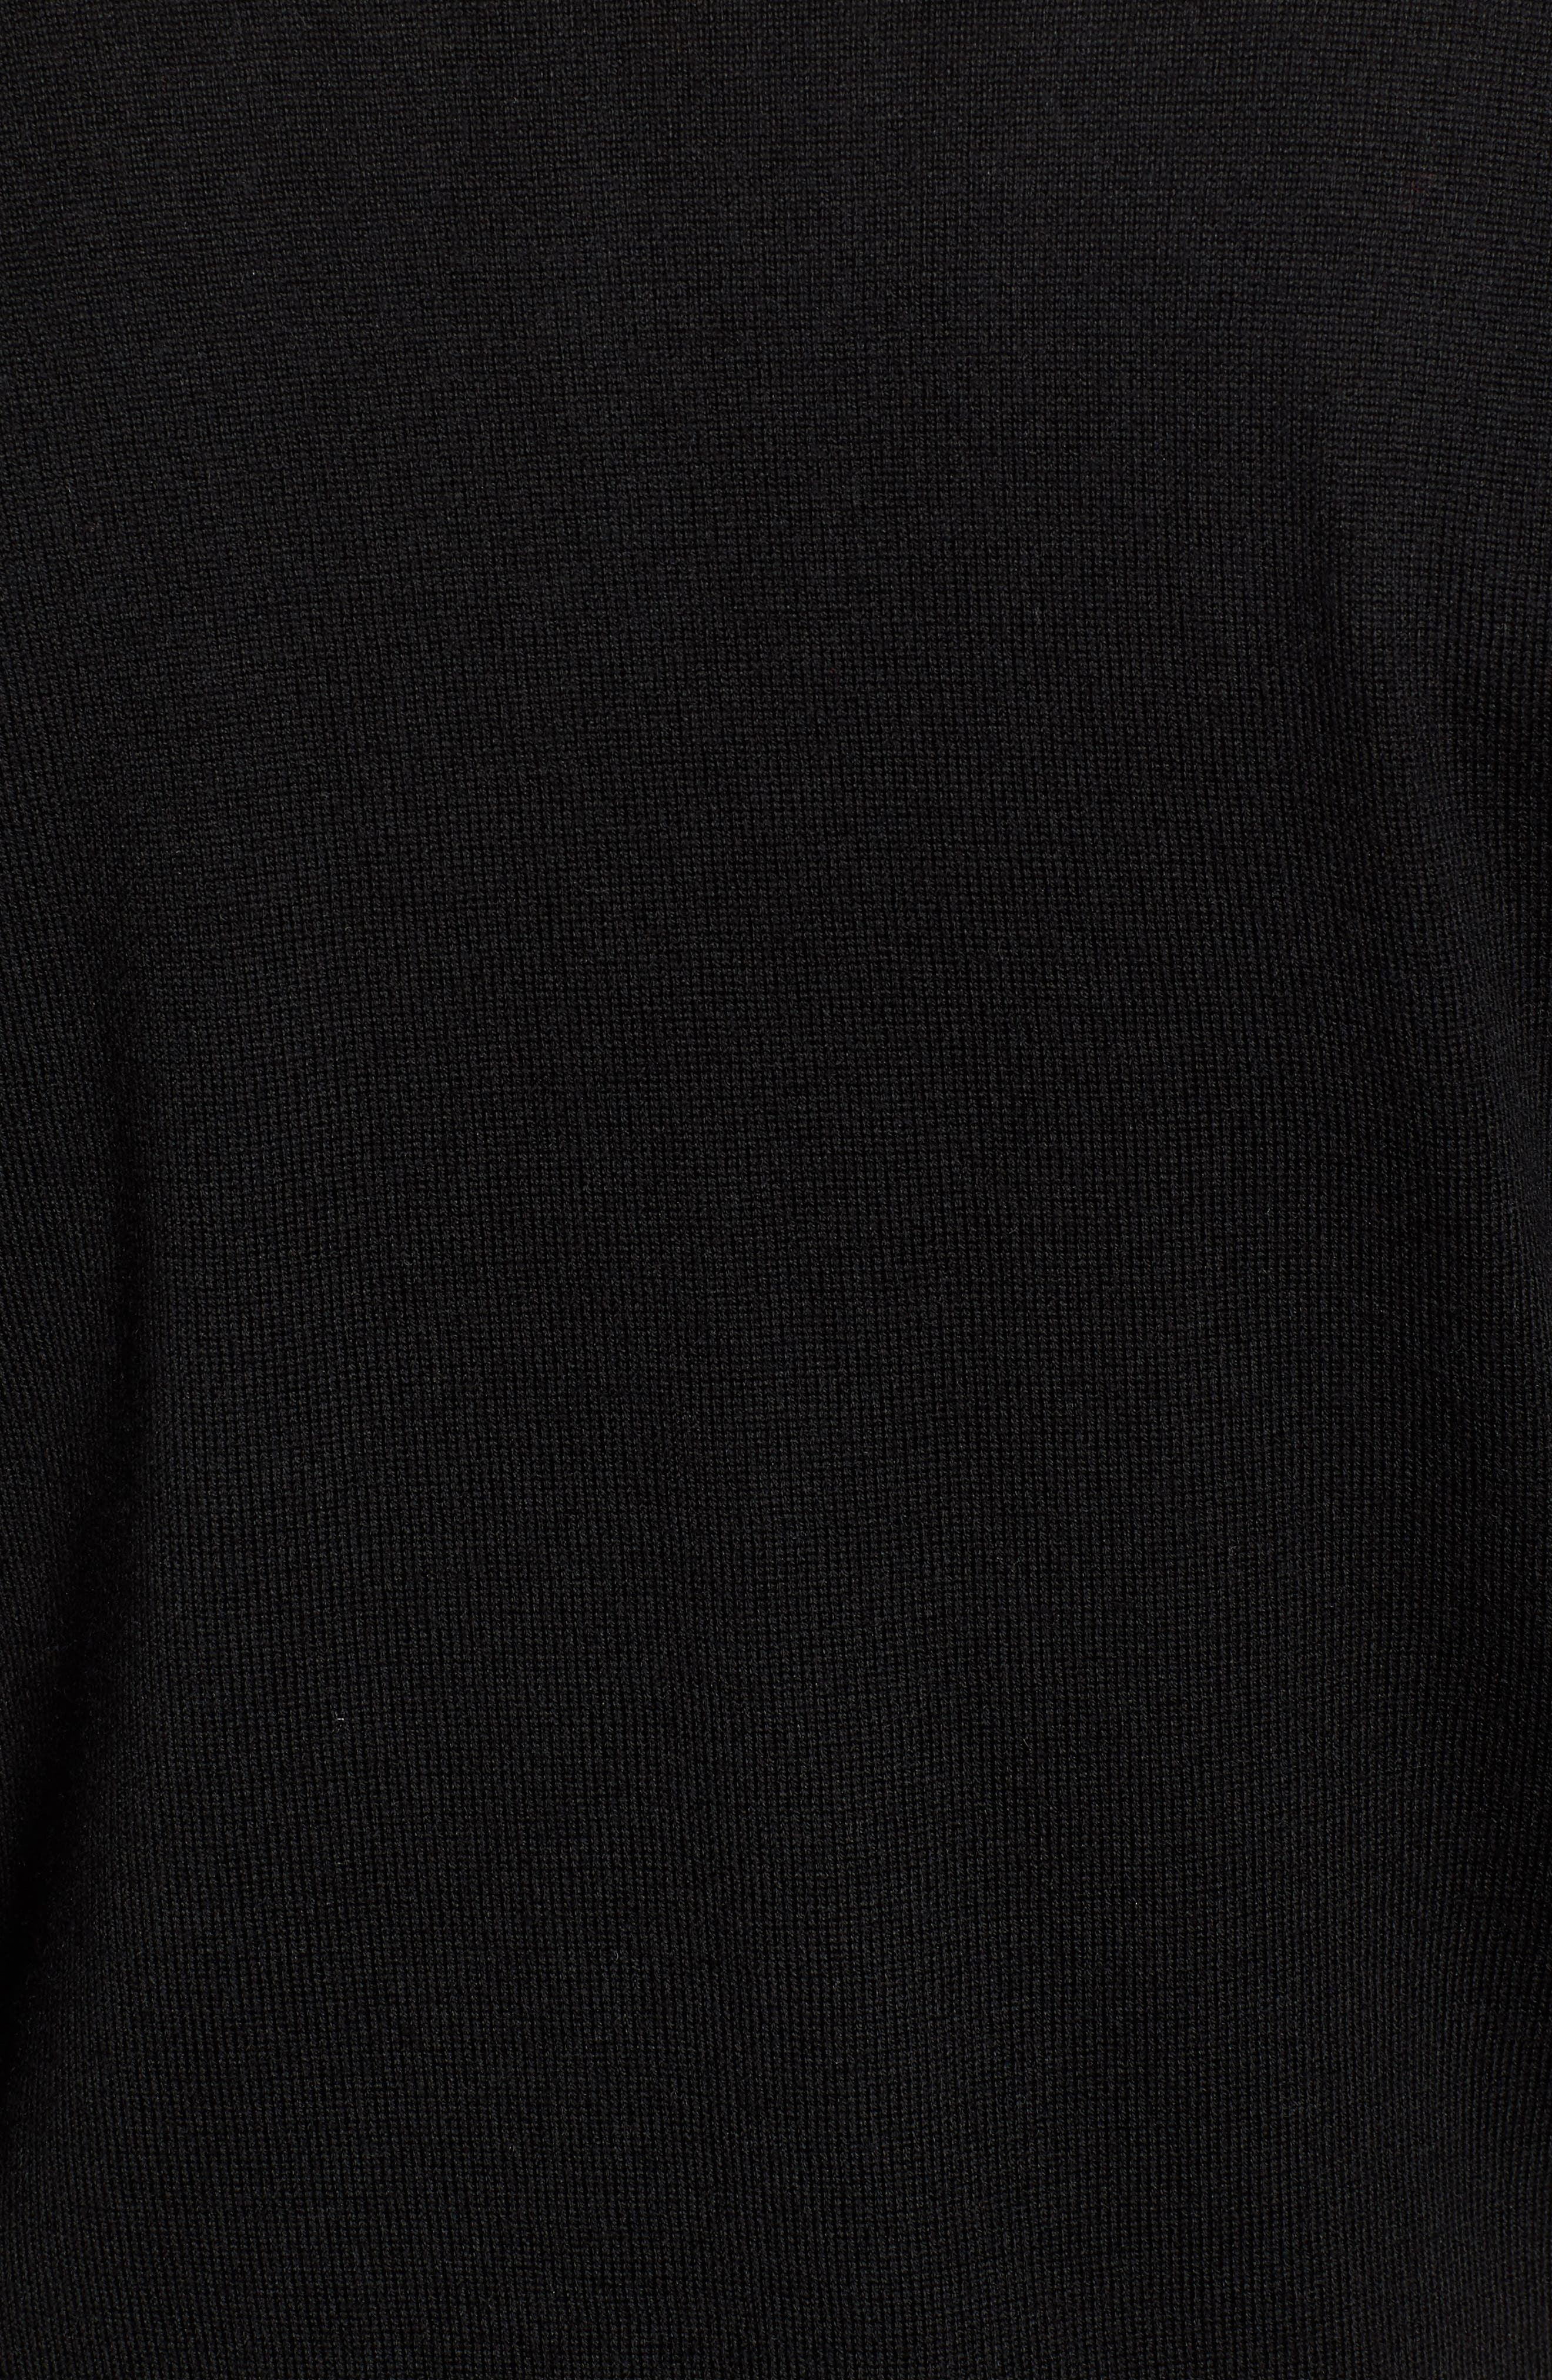 Crown Soft Wool Blend Quarter Zip Sweater,                             Alternate thumbnail 5, color,                             001